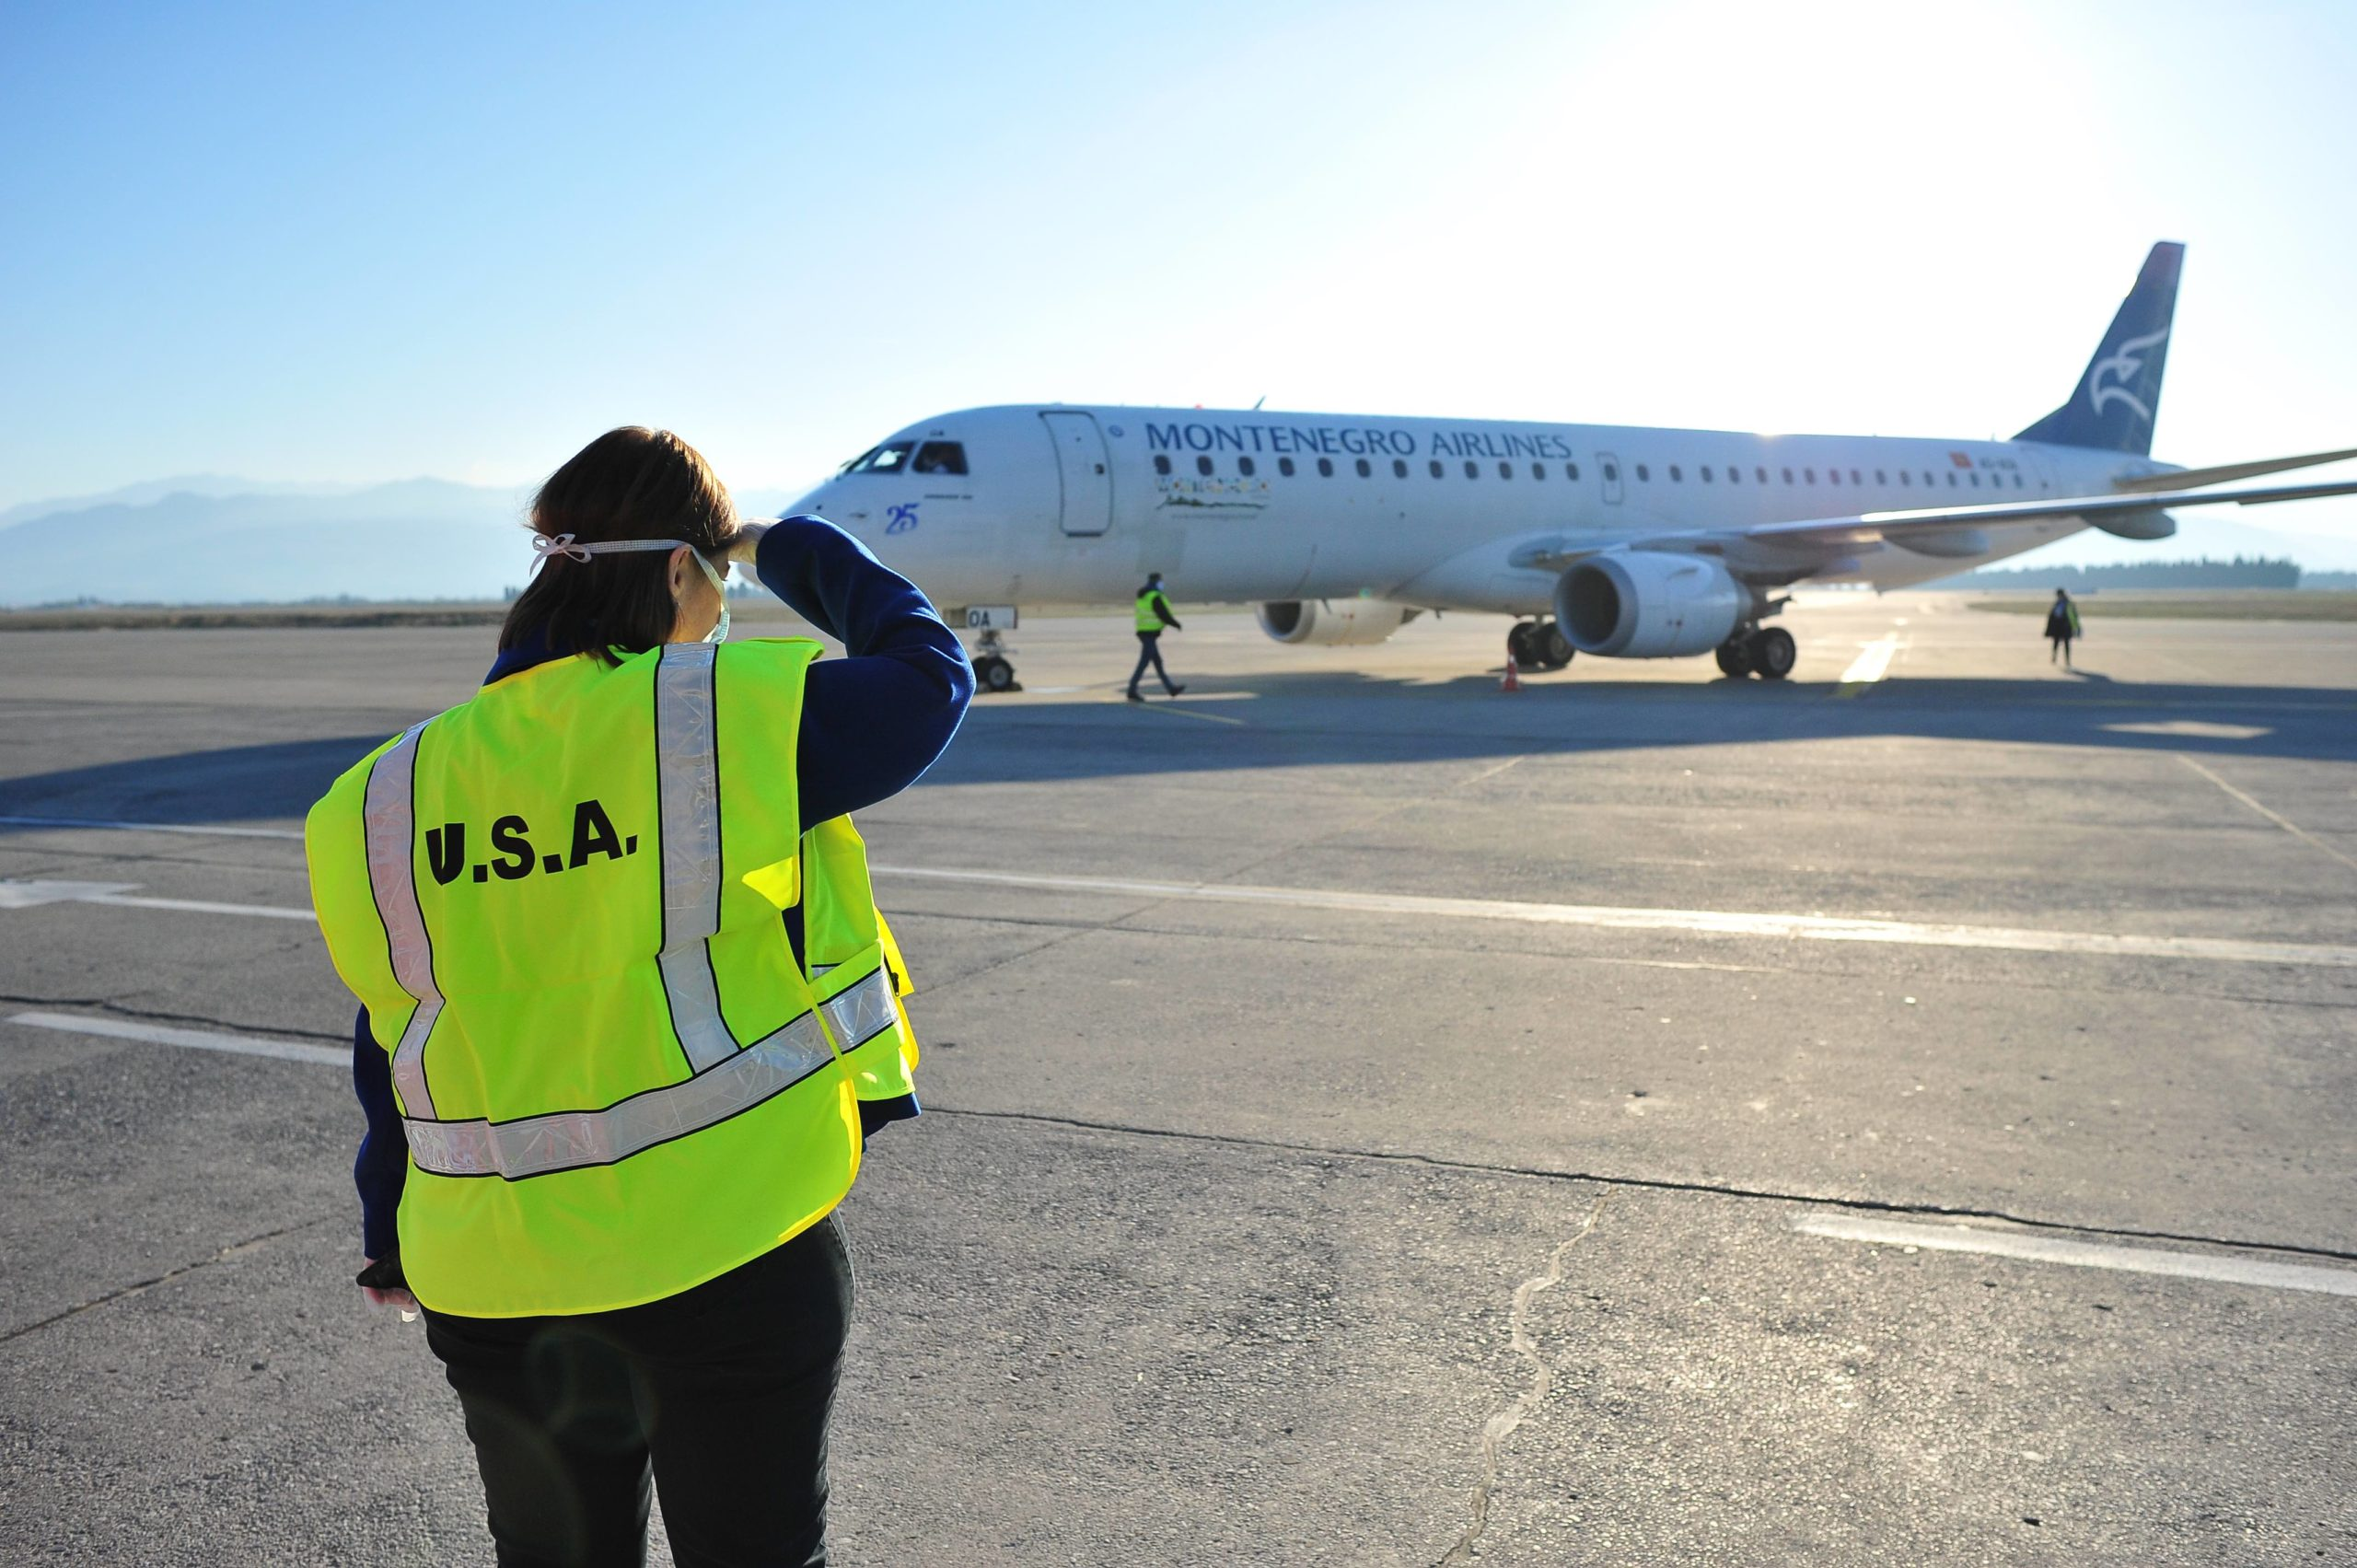 U.S. Embassy Podgorica coordinated with U.S. Embassy Sarajevo, the governments of Montenegro, Bosnia and Herzegovina, and Germany to organize flights to return 53 U.S. citizens and Legal Permanent Residents home from Montenegro.